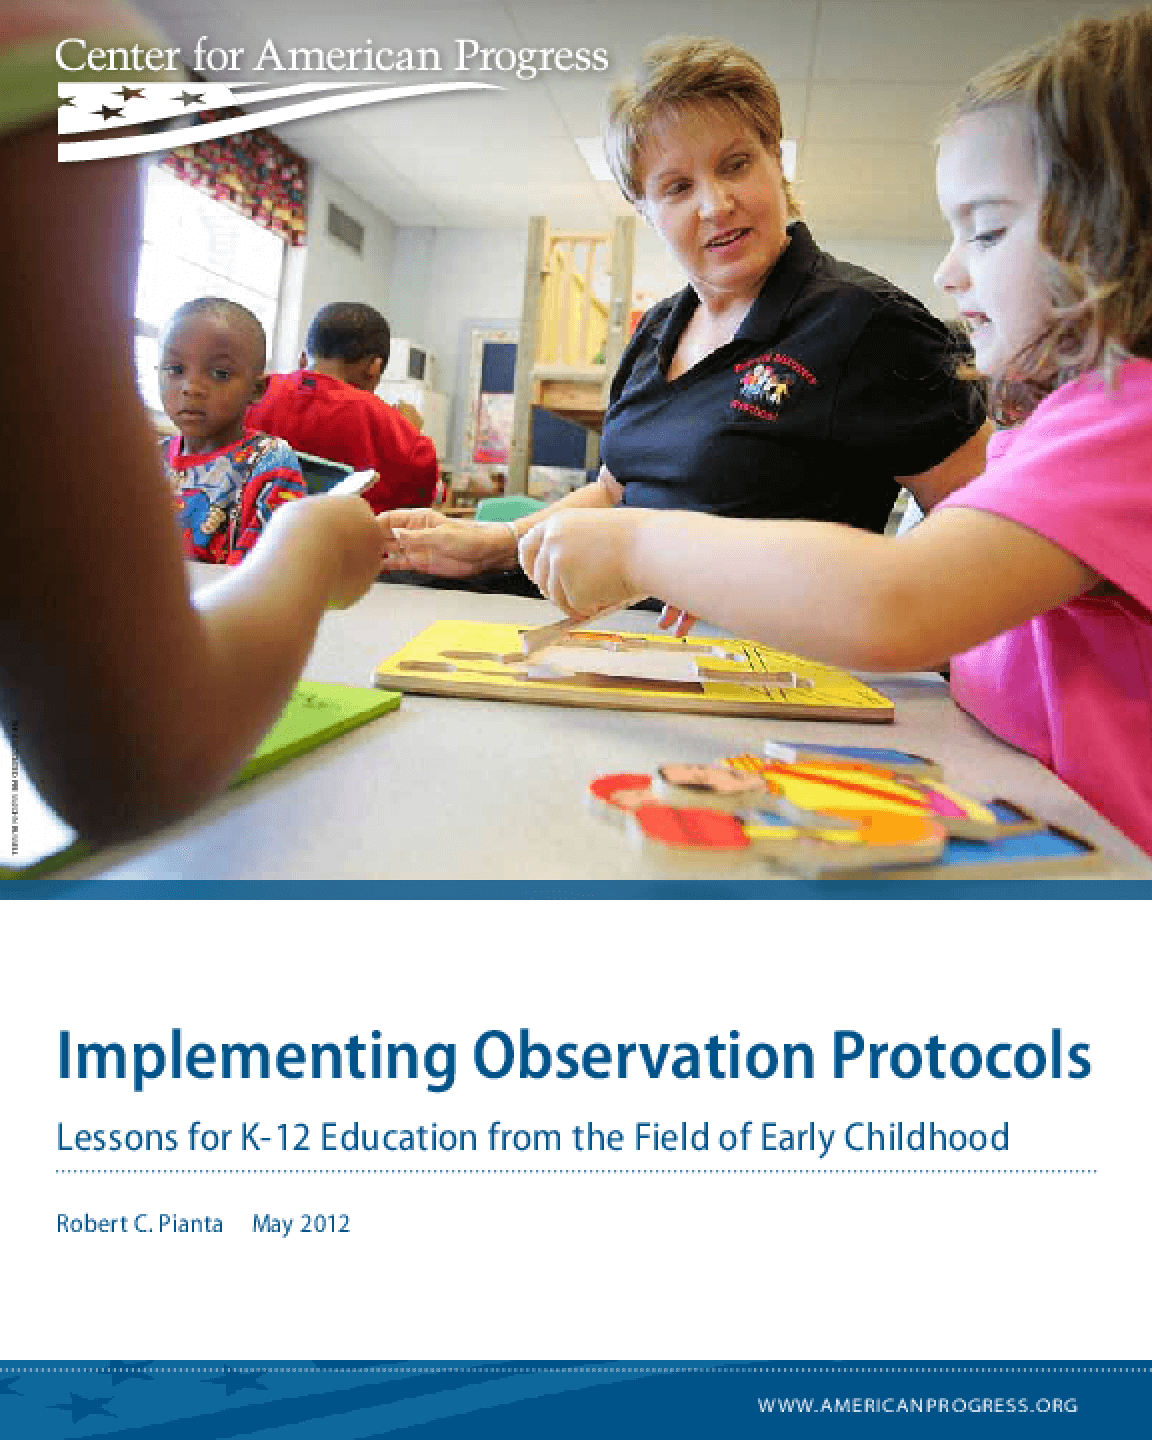 Implementing Observation Protocols: Lessons for K-12 Education From the Field of Early Childhood